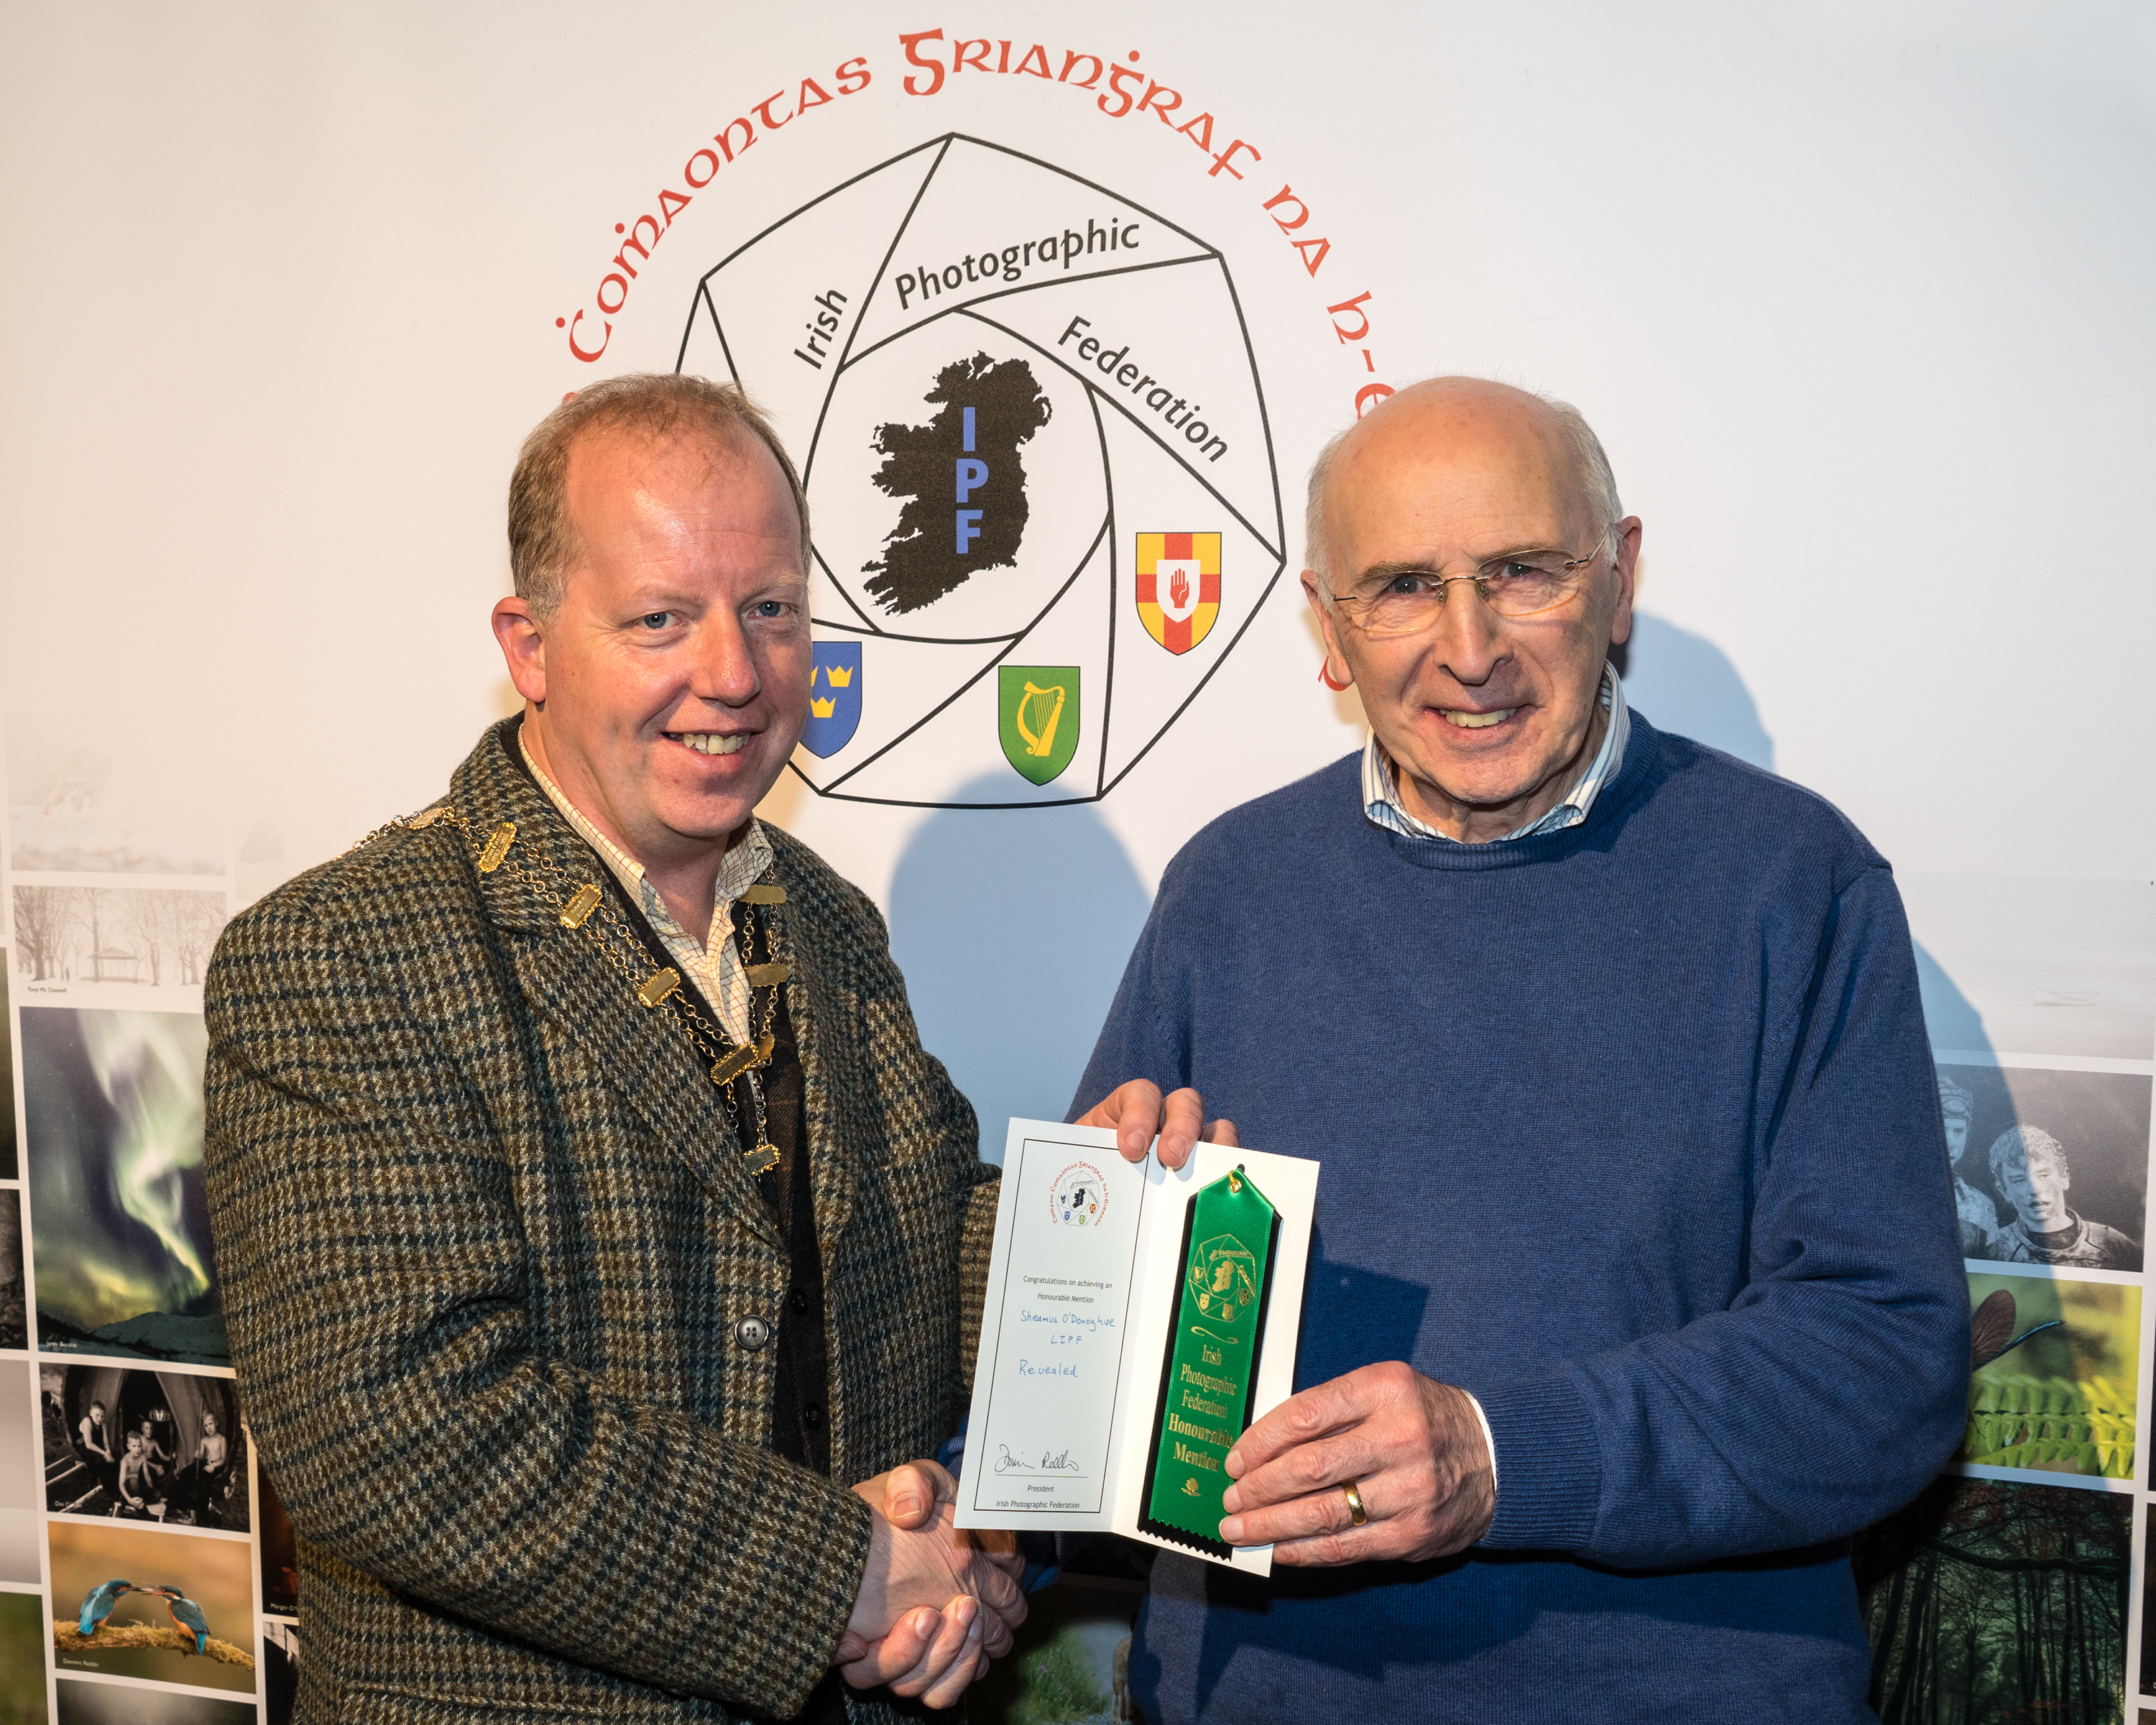 Dominic Reddin, FIPF presenting an Honourable Mention Certificate to Sheamus O'Donoghue, LIPF